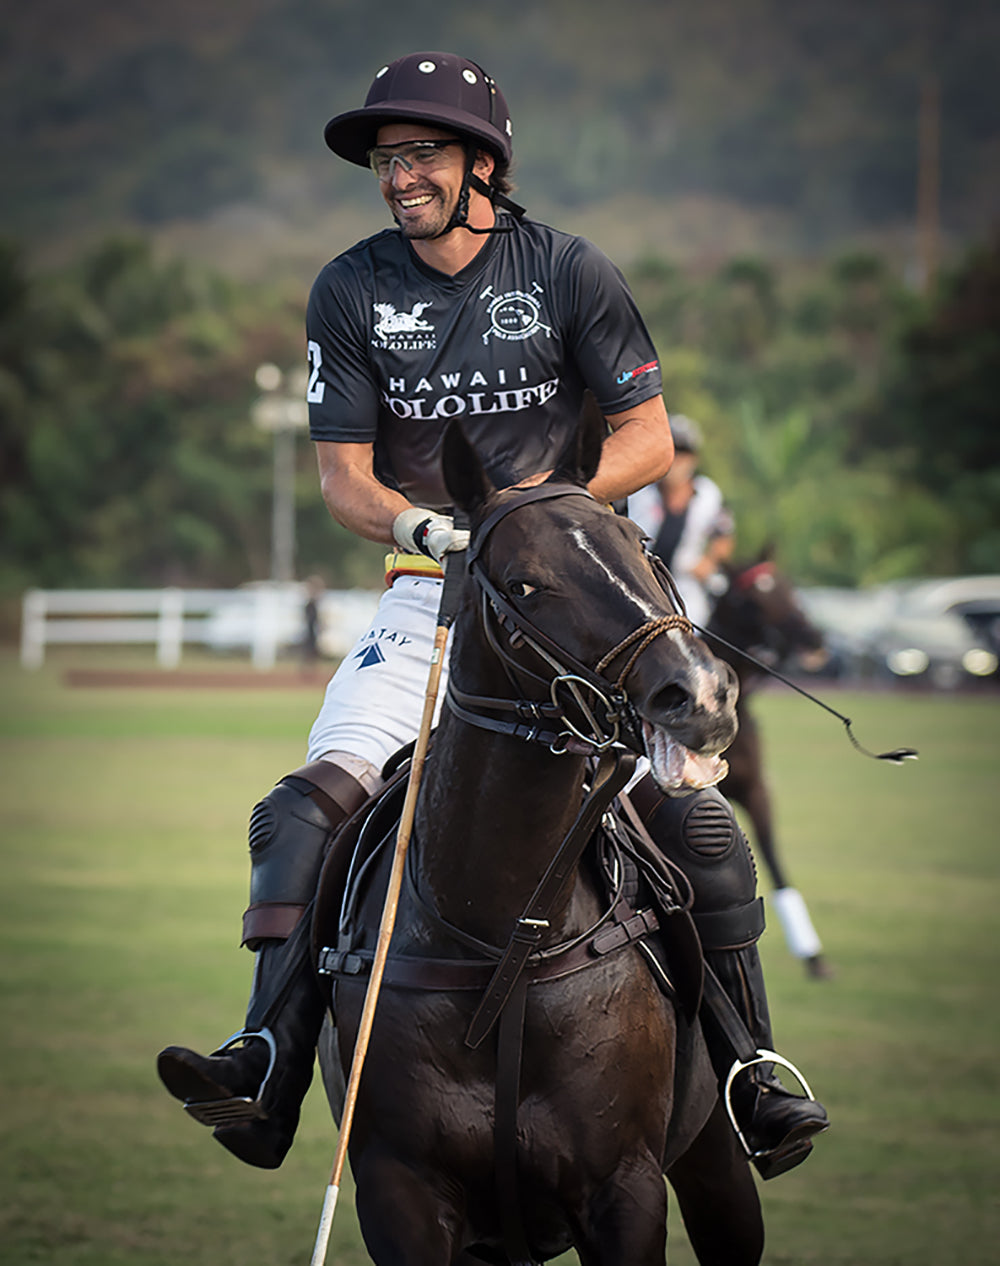 Ignacio Lapida in Hawaii Polo Life Polo Team Jersey